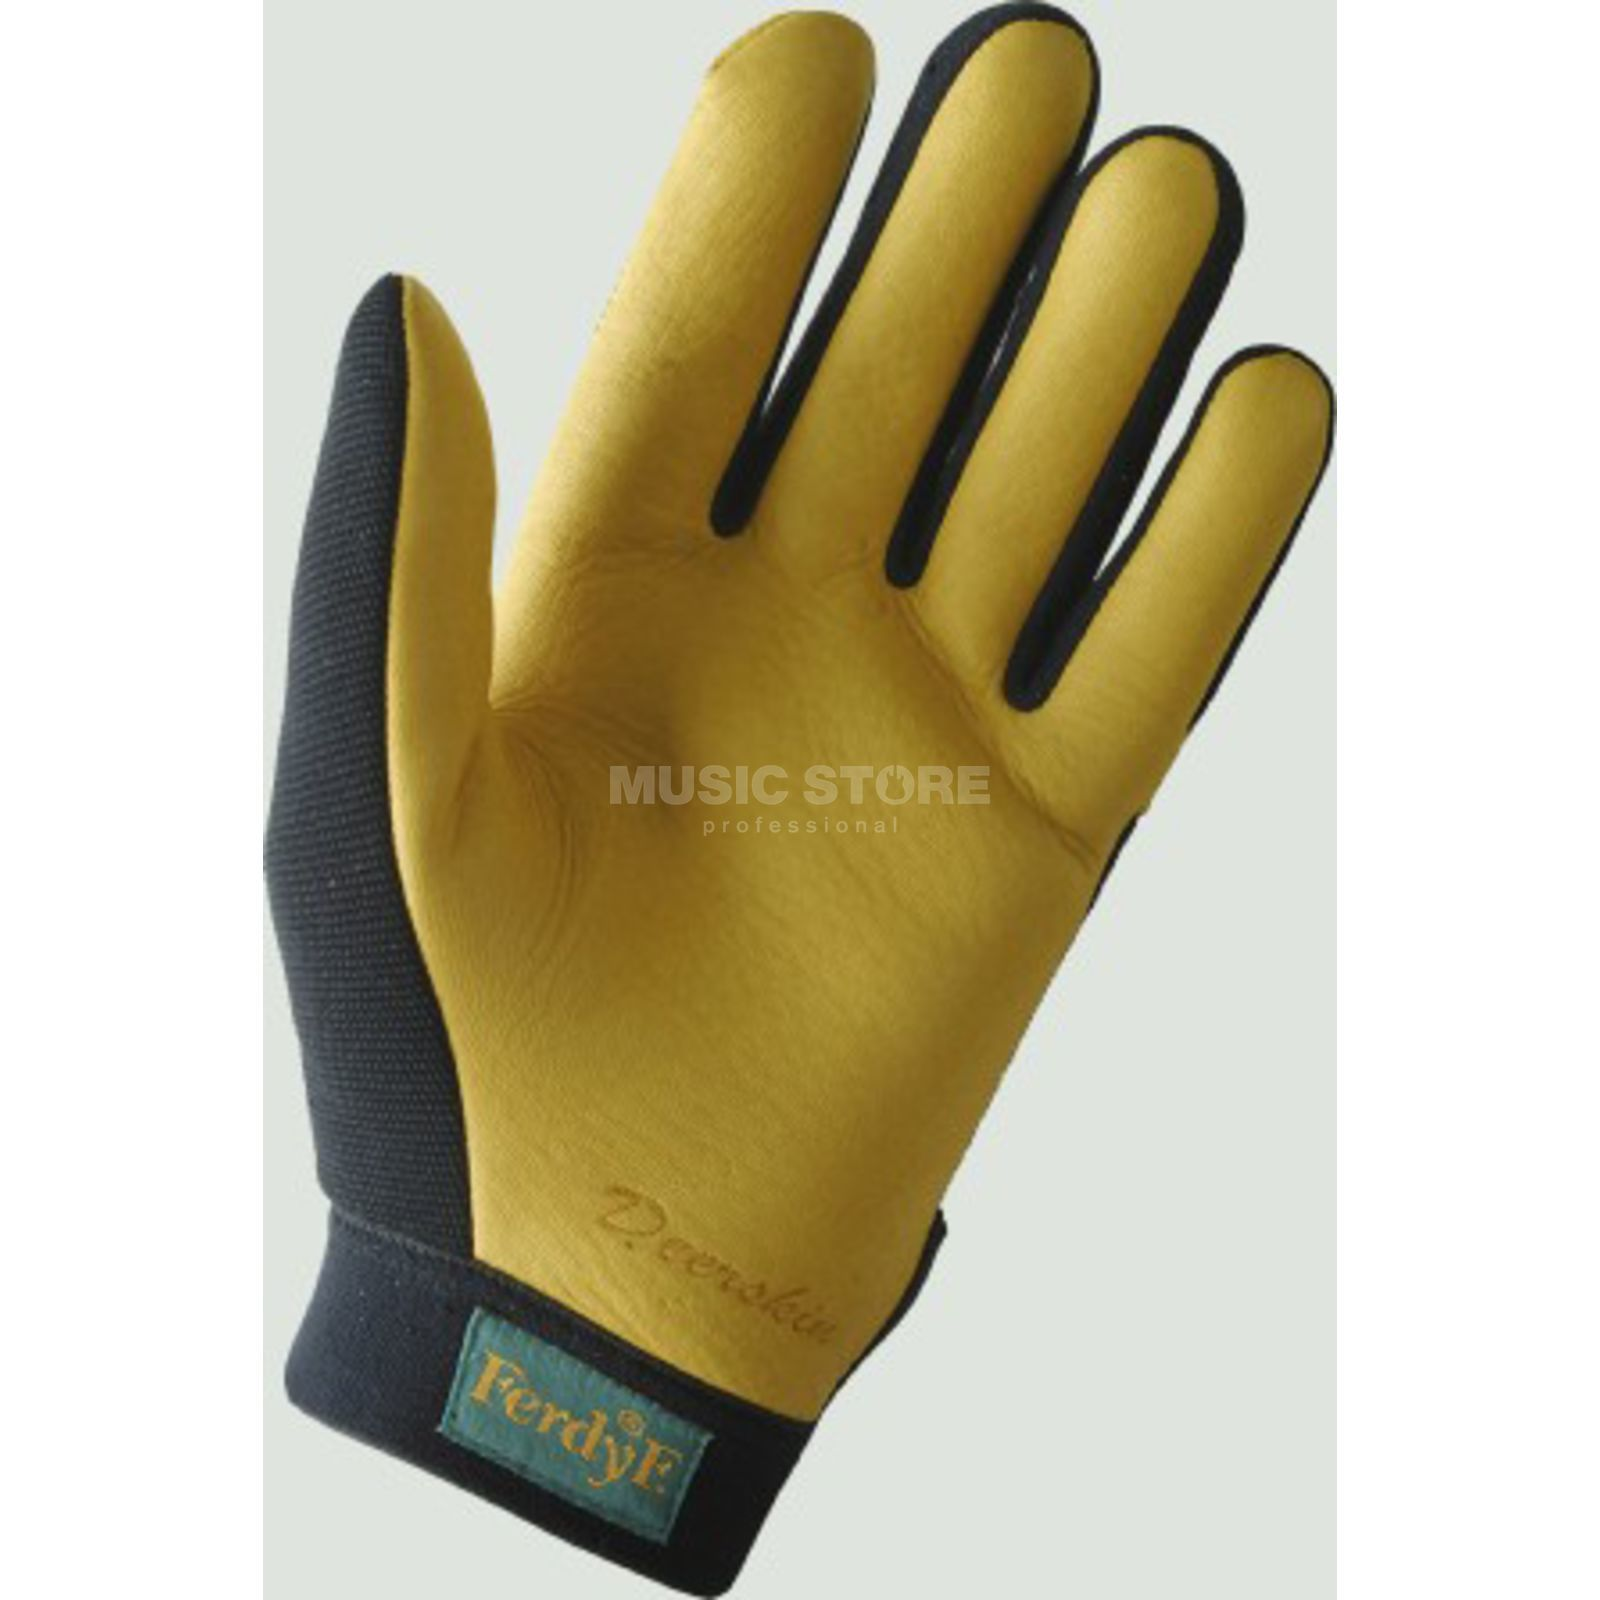 FerdyF. Trapper Gloves, Size S Yellow-Black Produktbillede